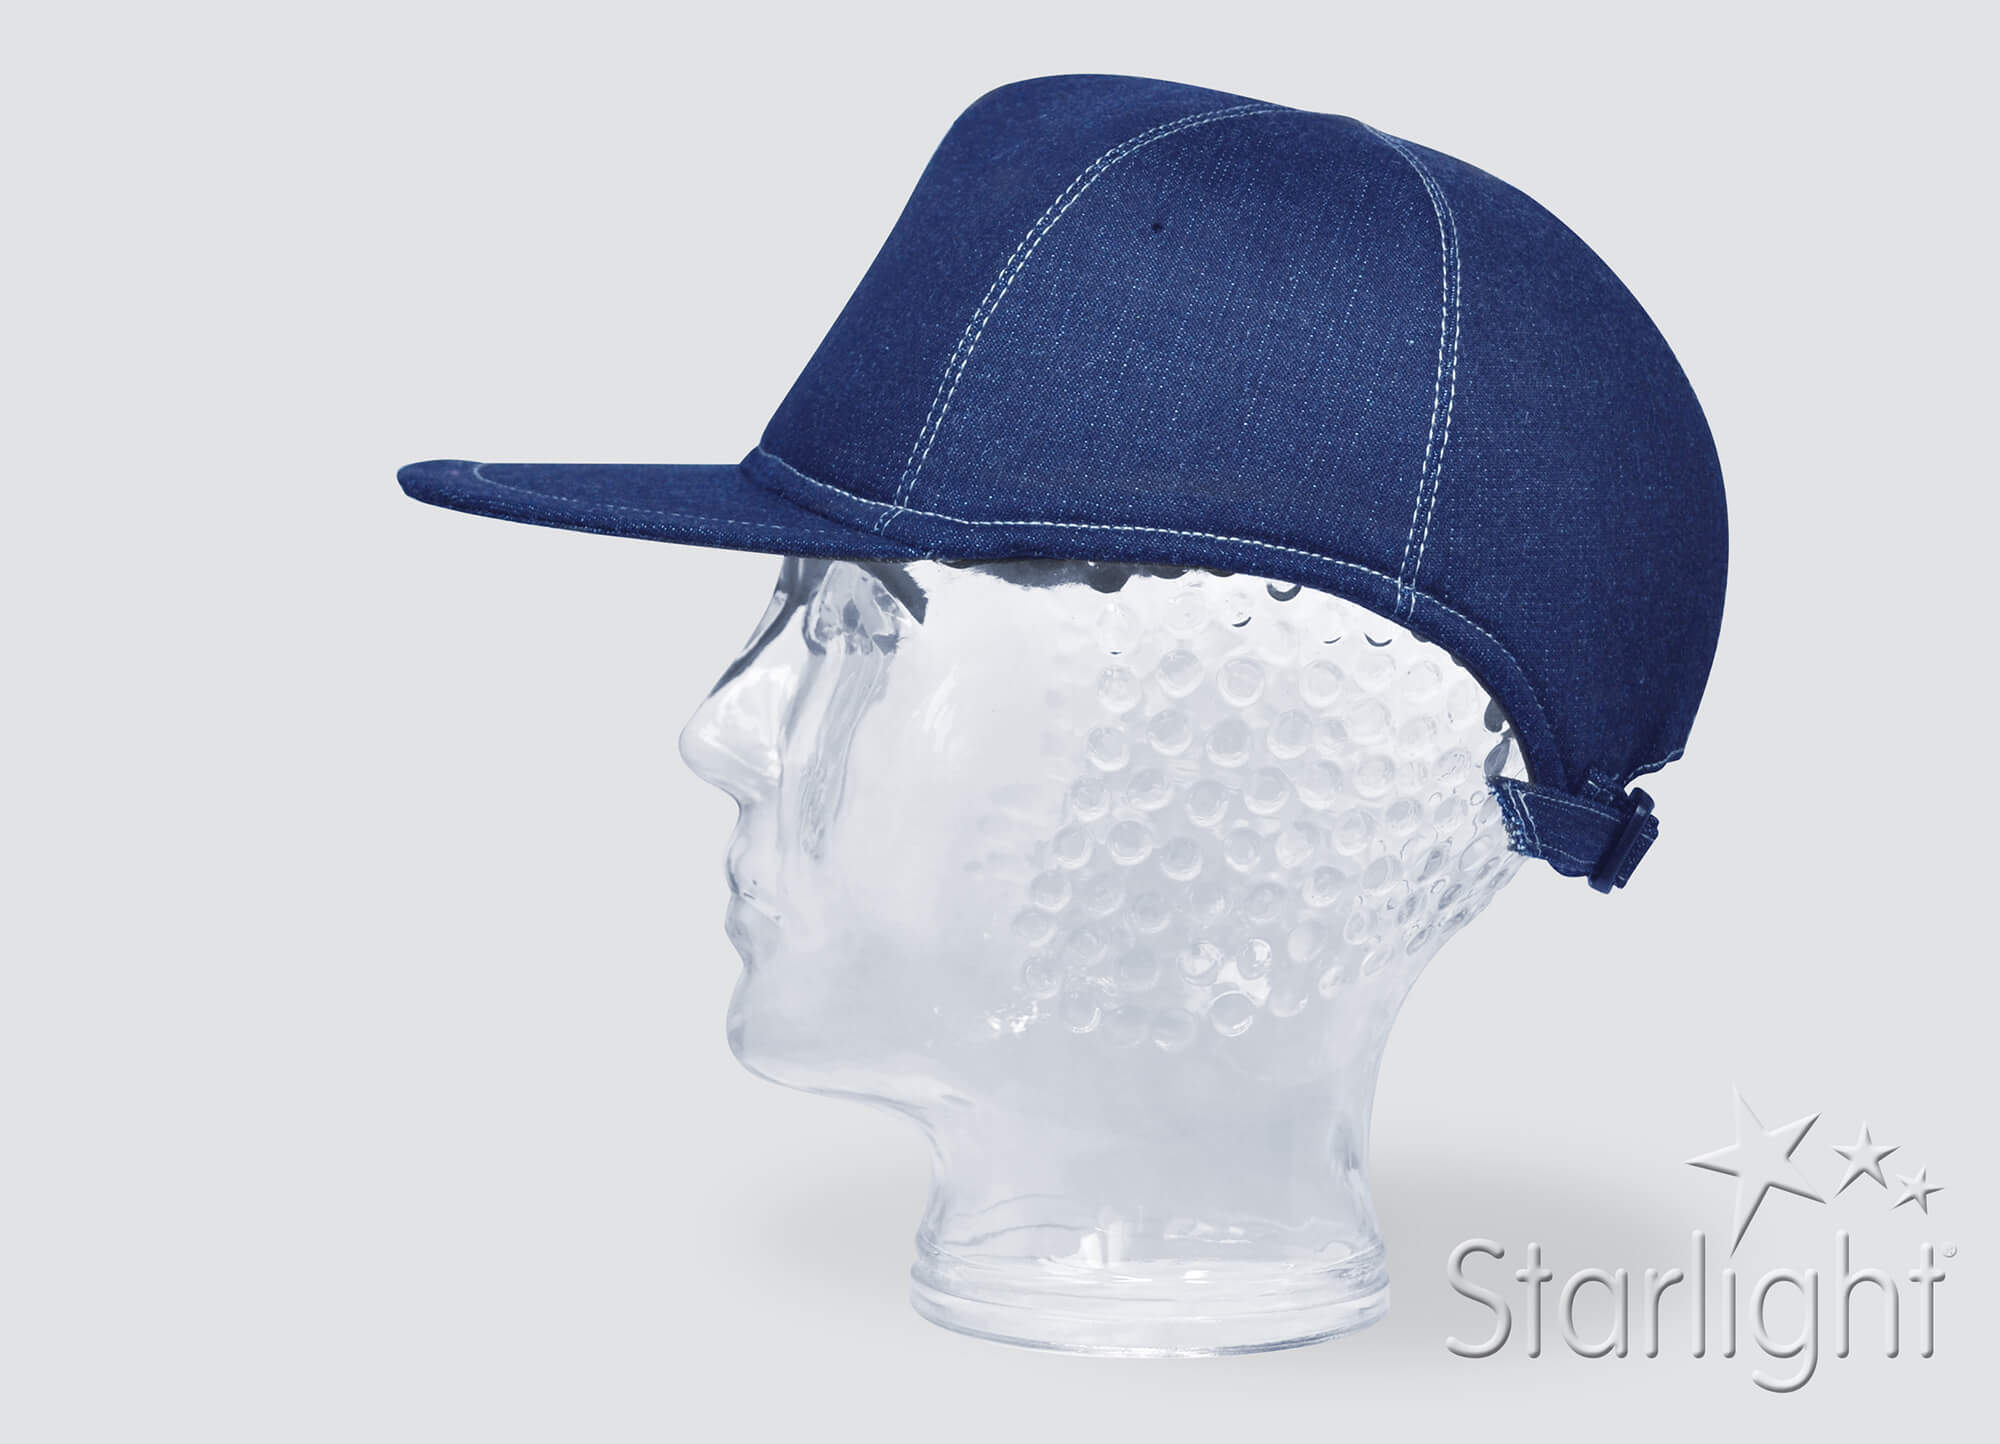 Starlight Generation Baseball cap Denim look with contrasted seam stitching (option)